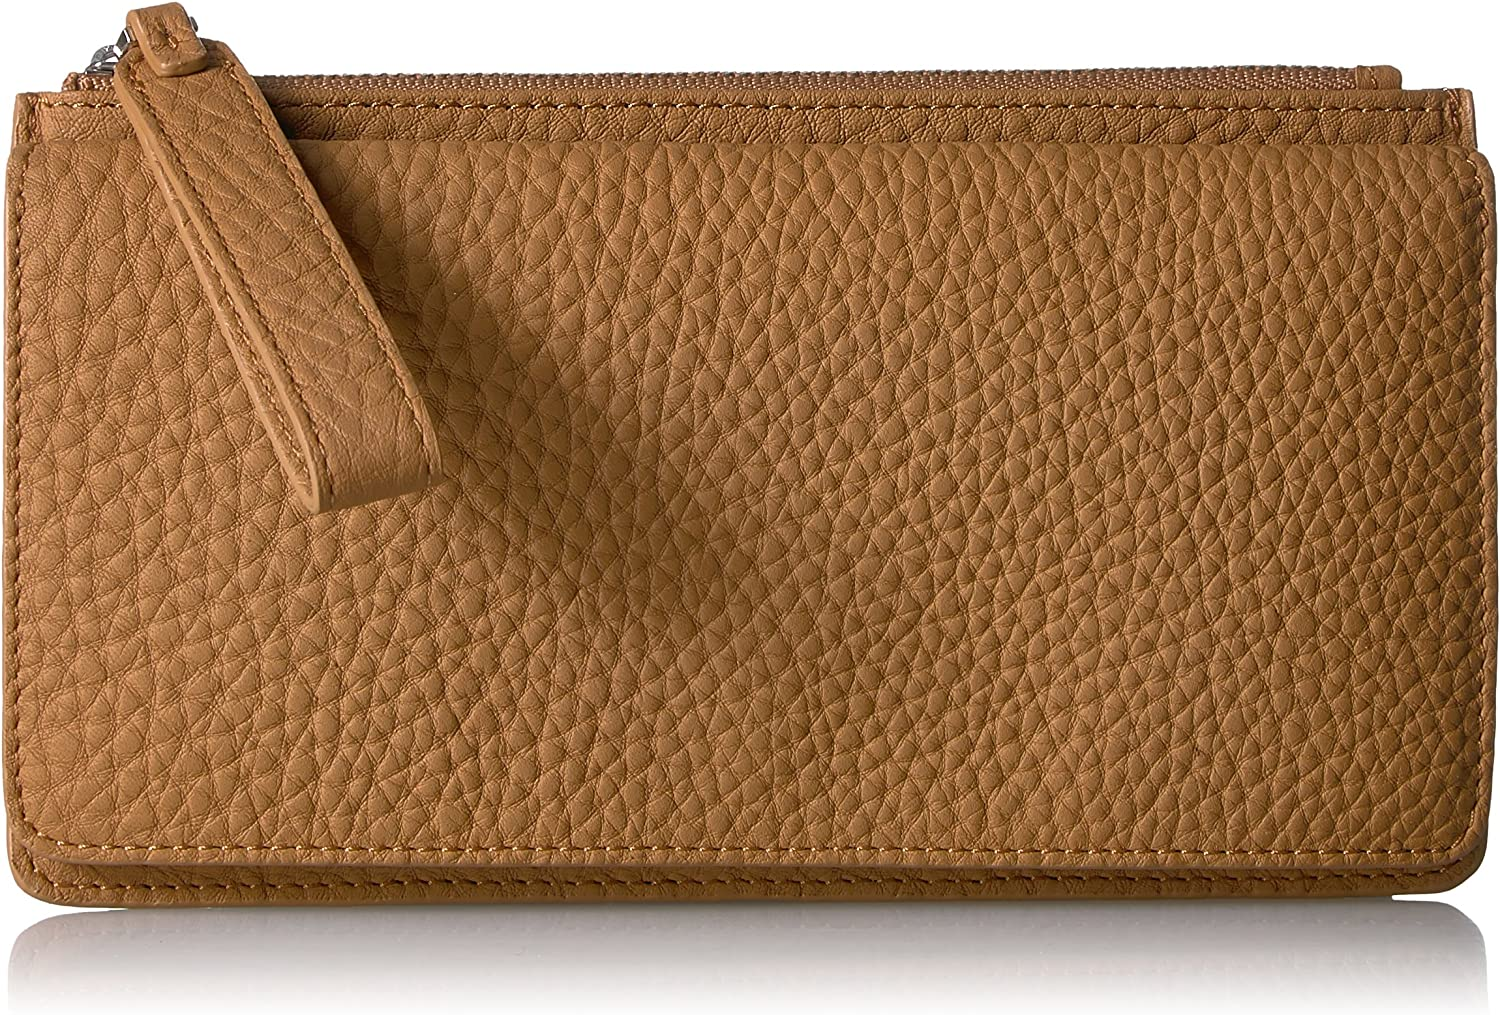 ECCO Women's Jilin Travel Wallet, cashmere